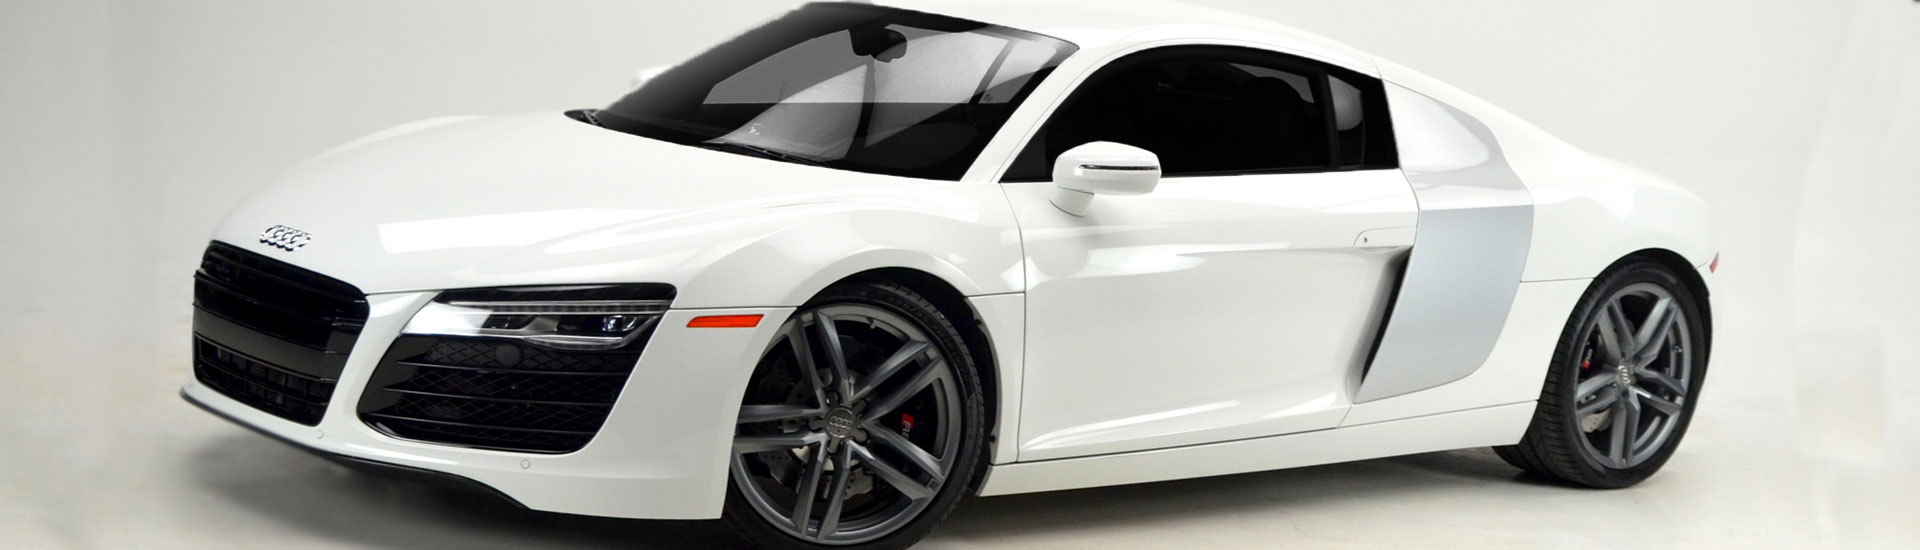 2010 Audi R8 Window Tint